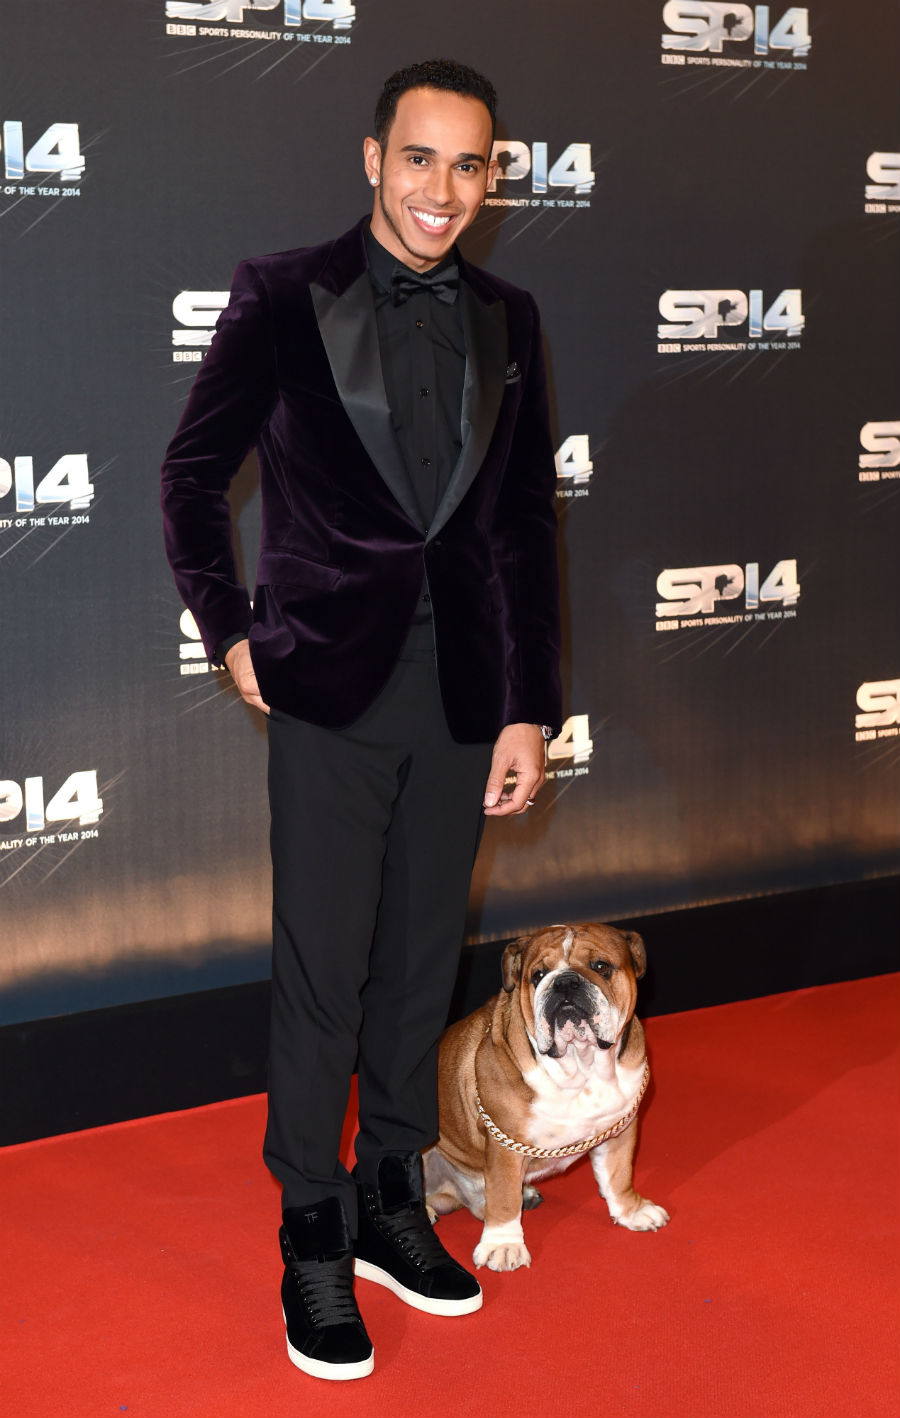 Lewis Hamilton and his dog Roscoe pose for the cameras ahead of the BBC Sports Personality of the Year award ceremony